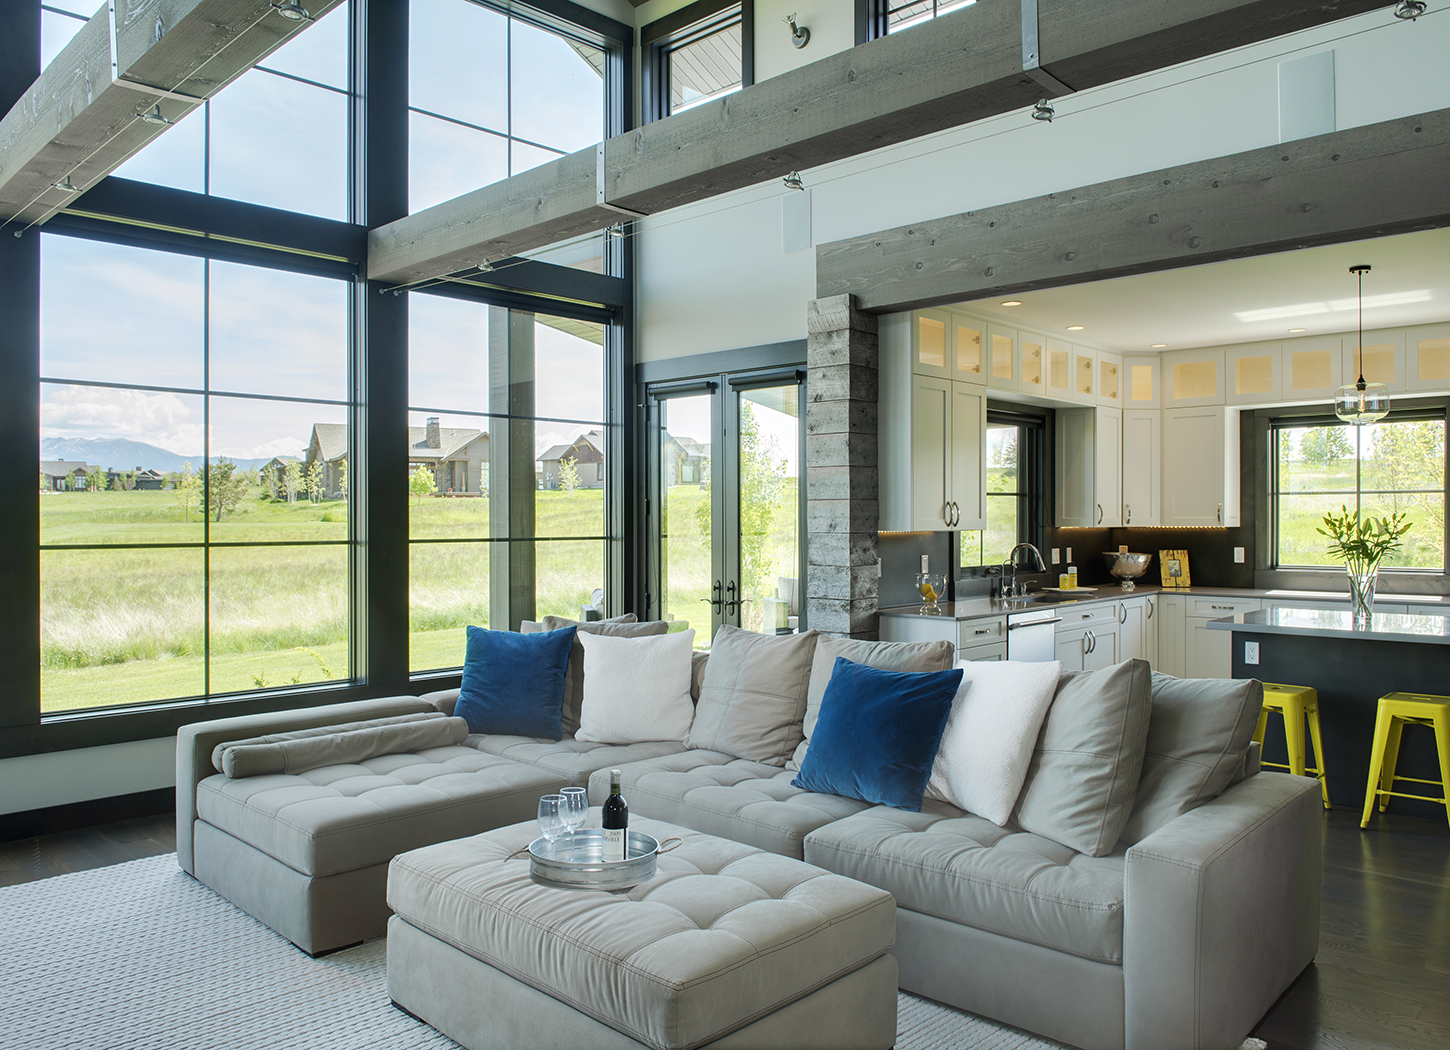 I love the large beams and the barnwood accents in this home.  The open floorplan creates the perfect entertaining environment.  The french doors go right out to the spacious patio overlooking the   Black Bull   golf course.